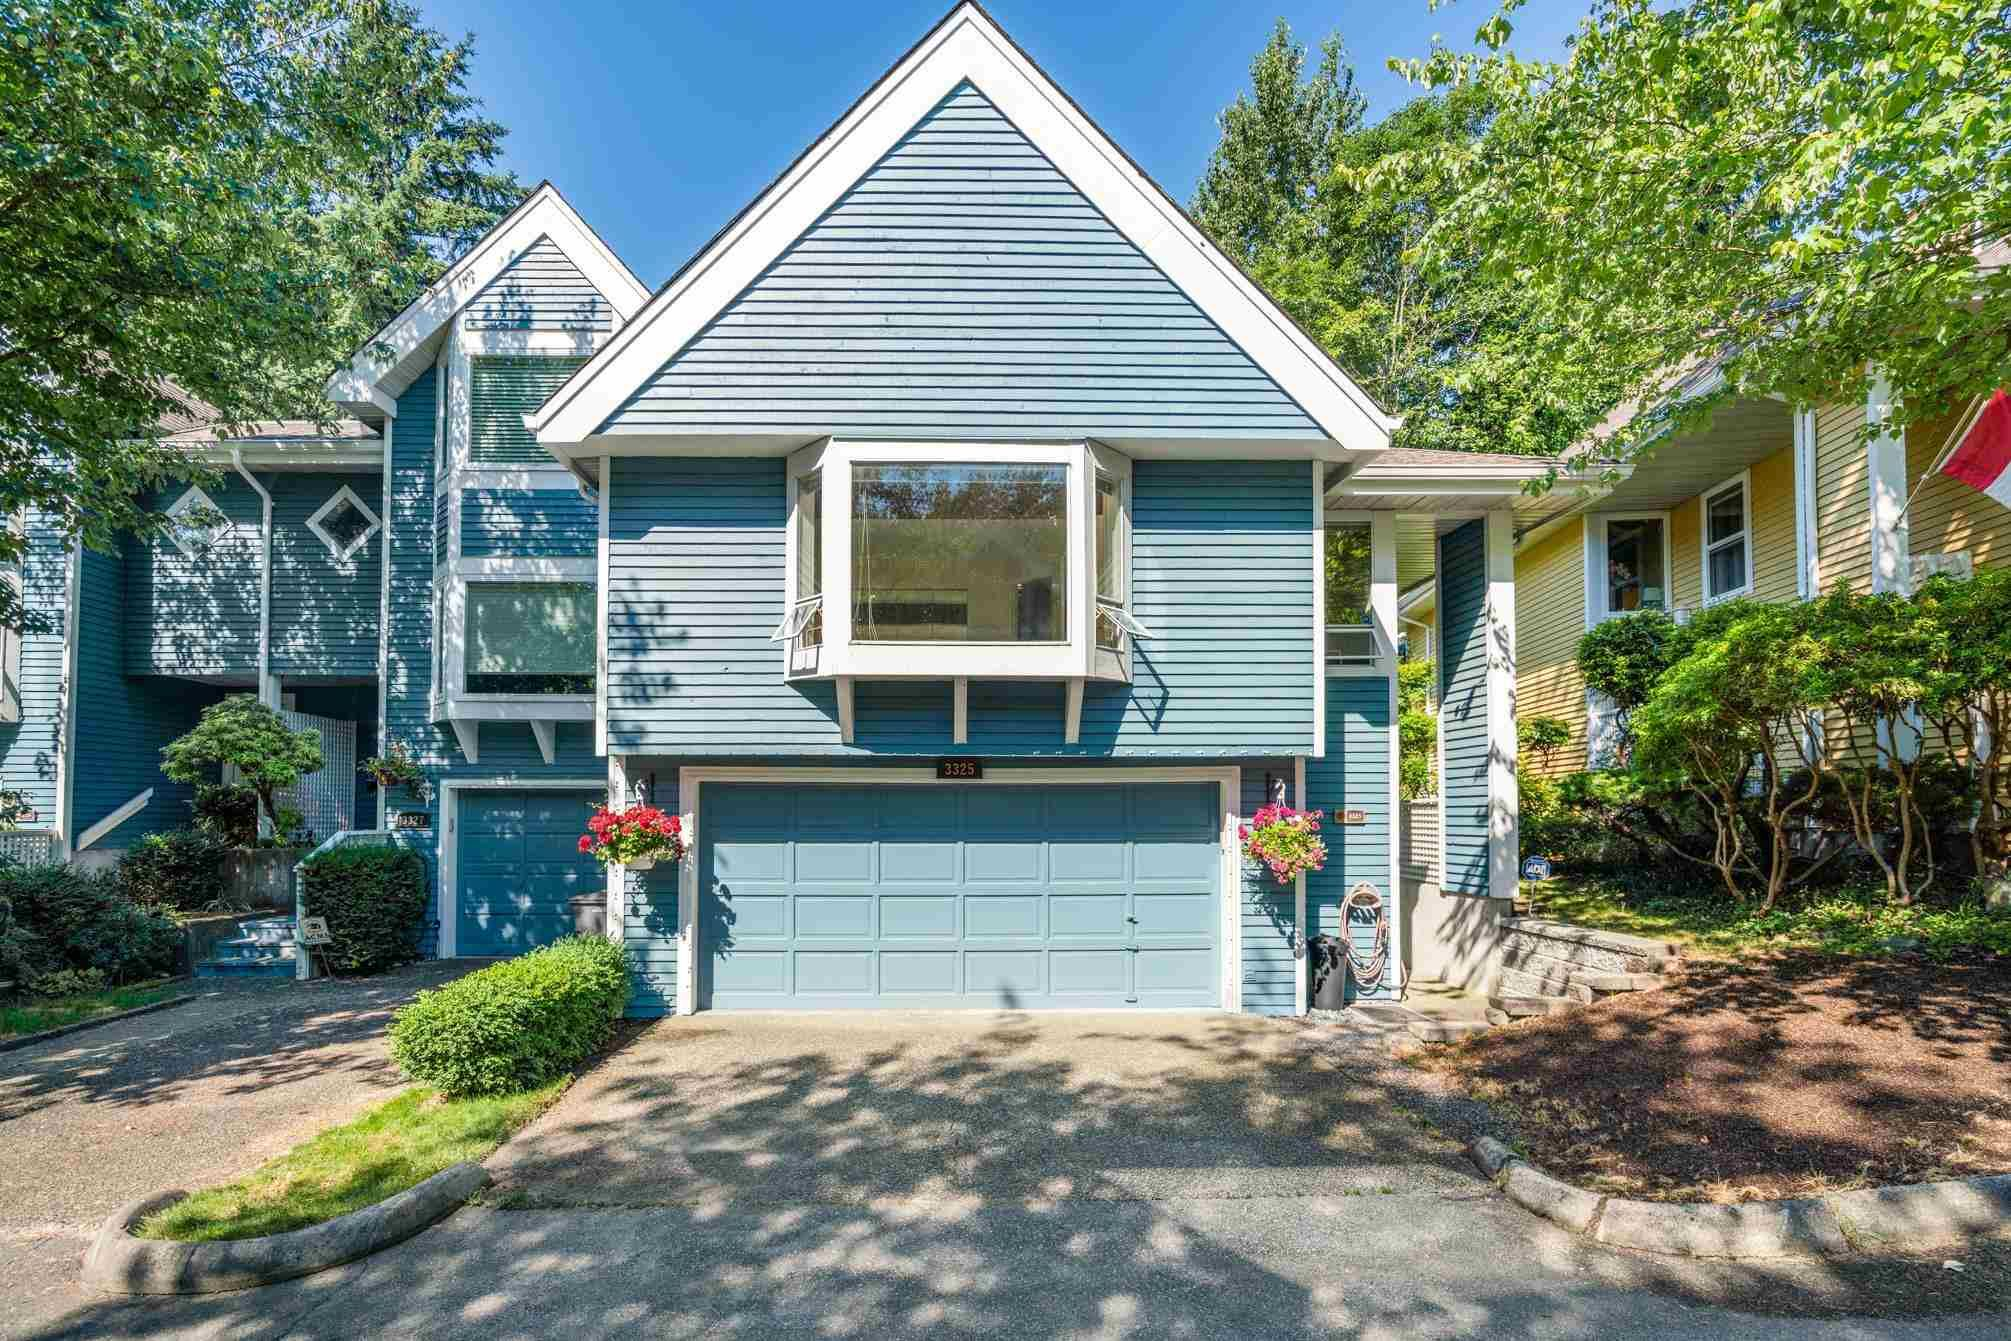 """Main Photo: 3325 FLAGSTAFF Place in Vancouver: Champlain Heights Townhouse for sale in """"COMPASS POINT"""" (Vancouver East)  : MLS®# R2597244"""